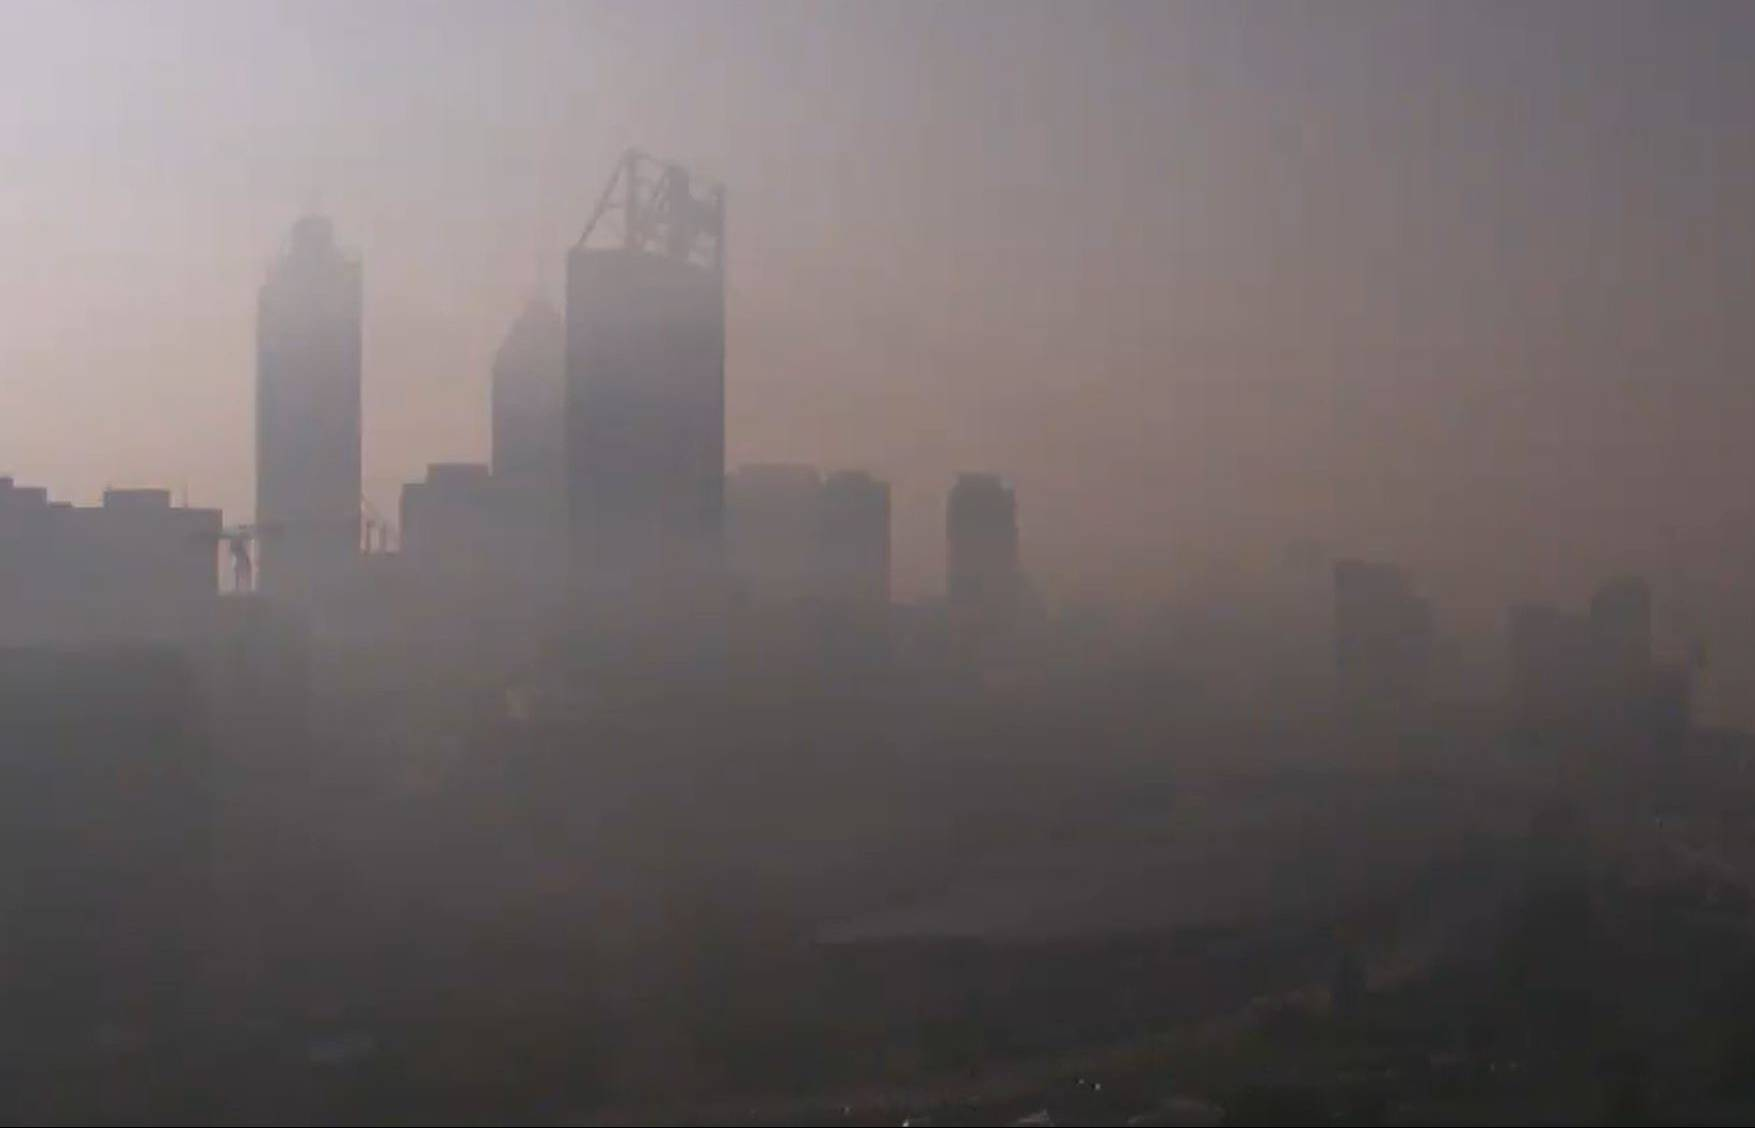 Article image for Smoke alert issued as haze continues to linger across Perth